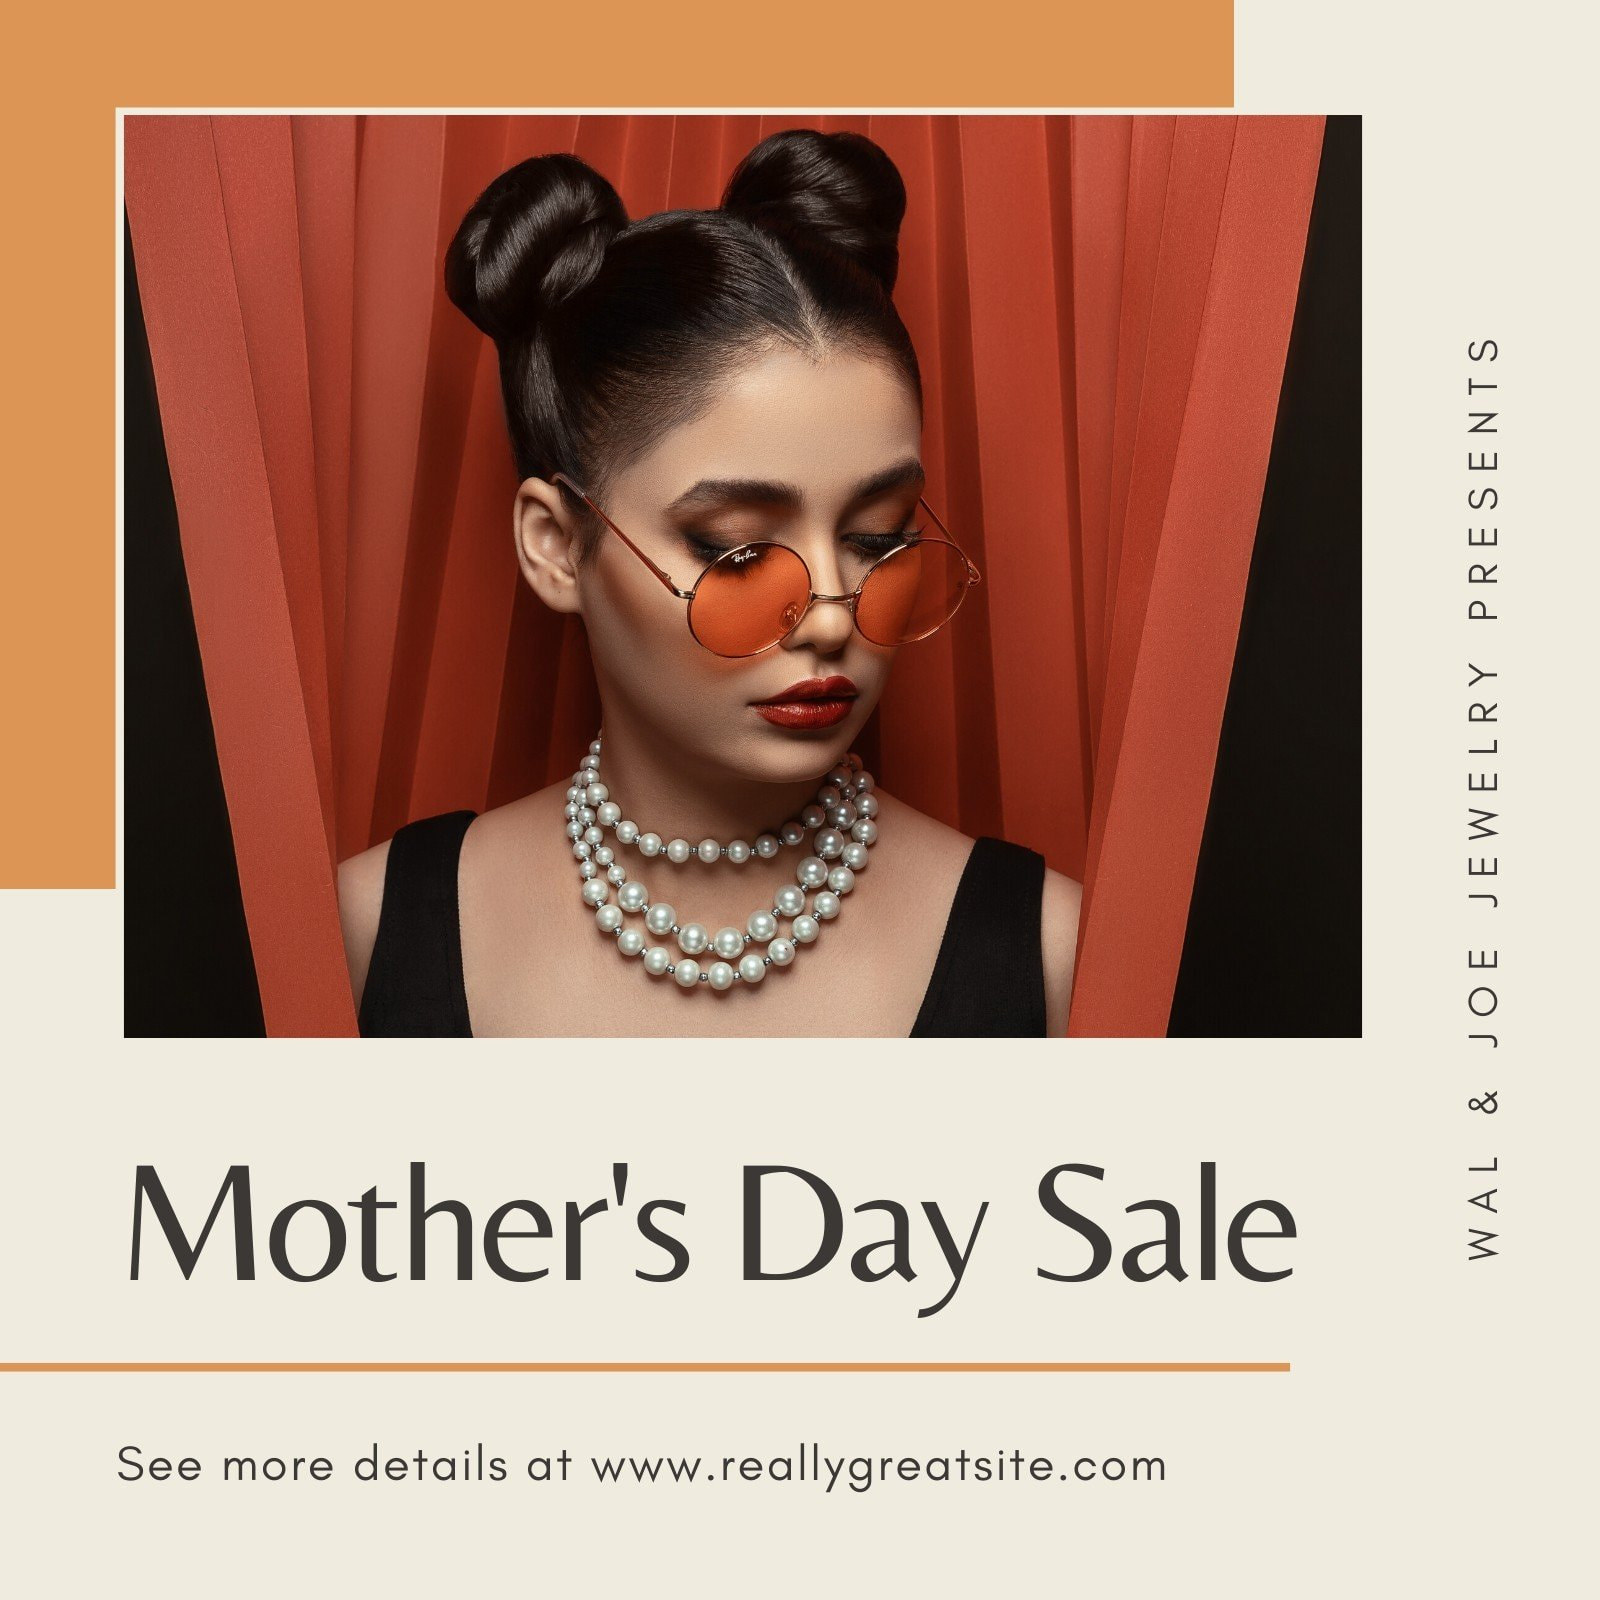 Orange Jewelry Mother's Day Sale Business Instagram Post